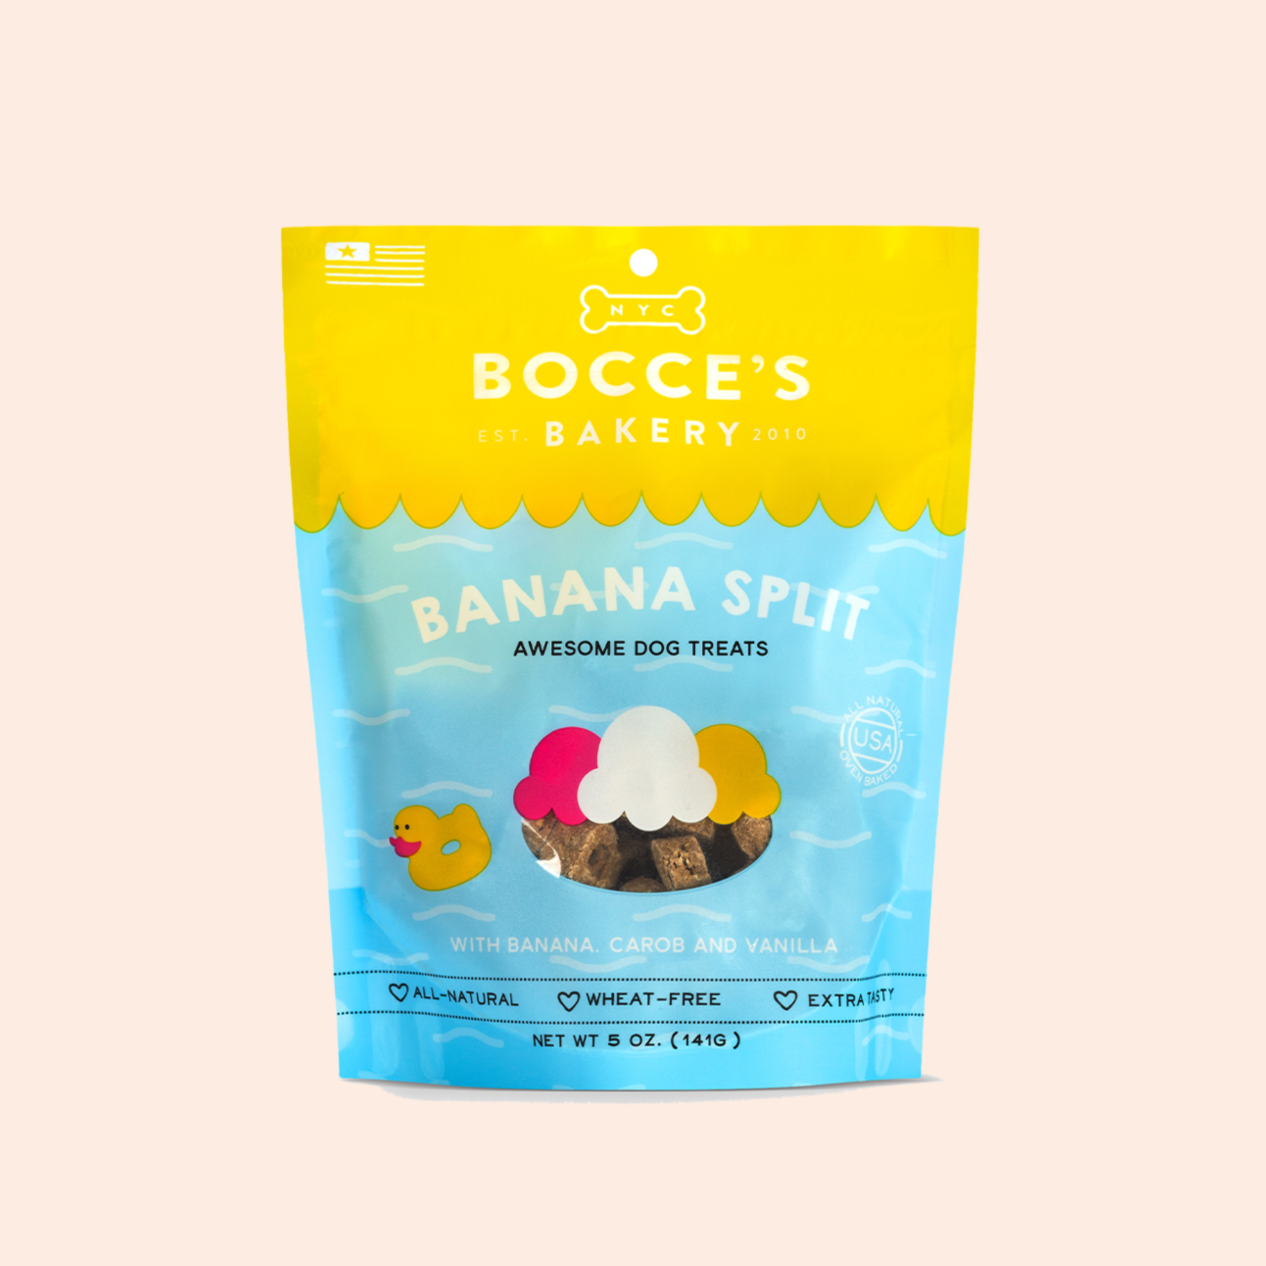 Banana Split Awesome Dog Treats